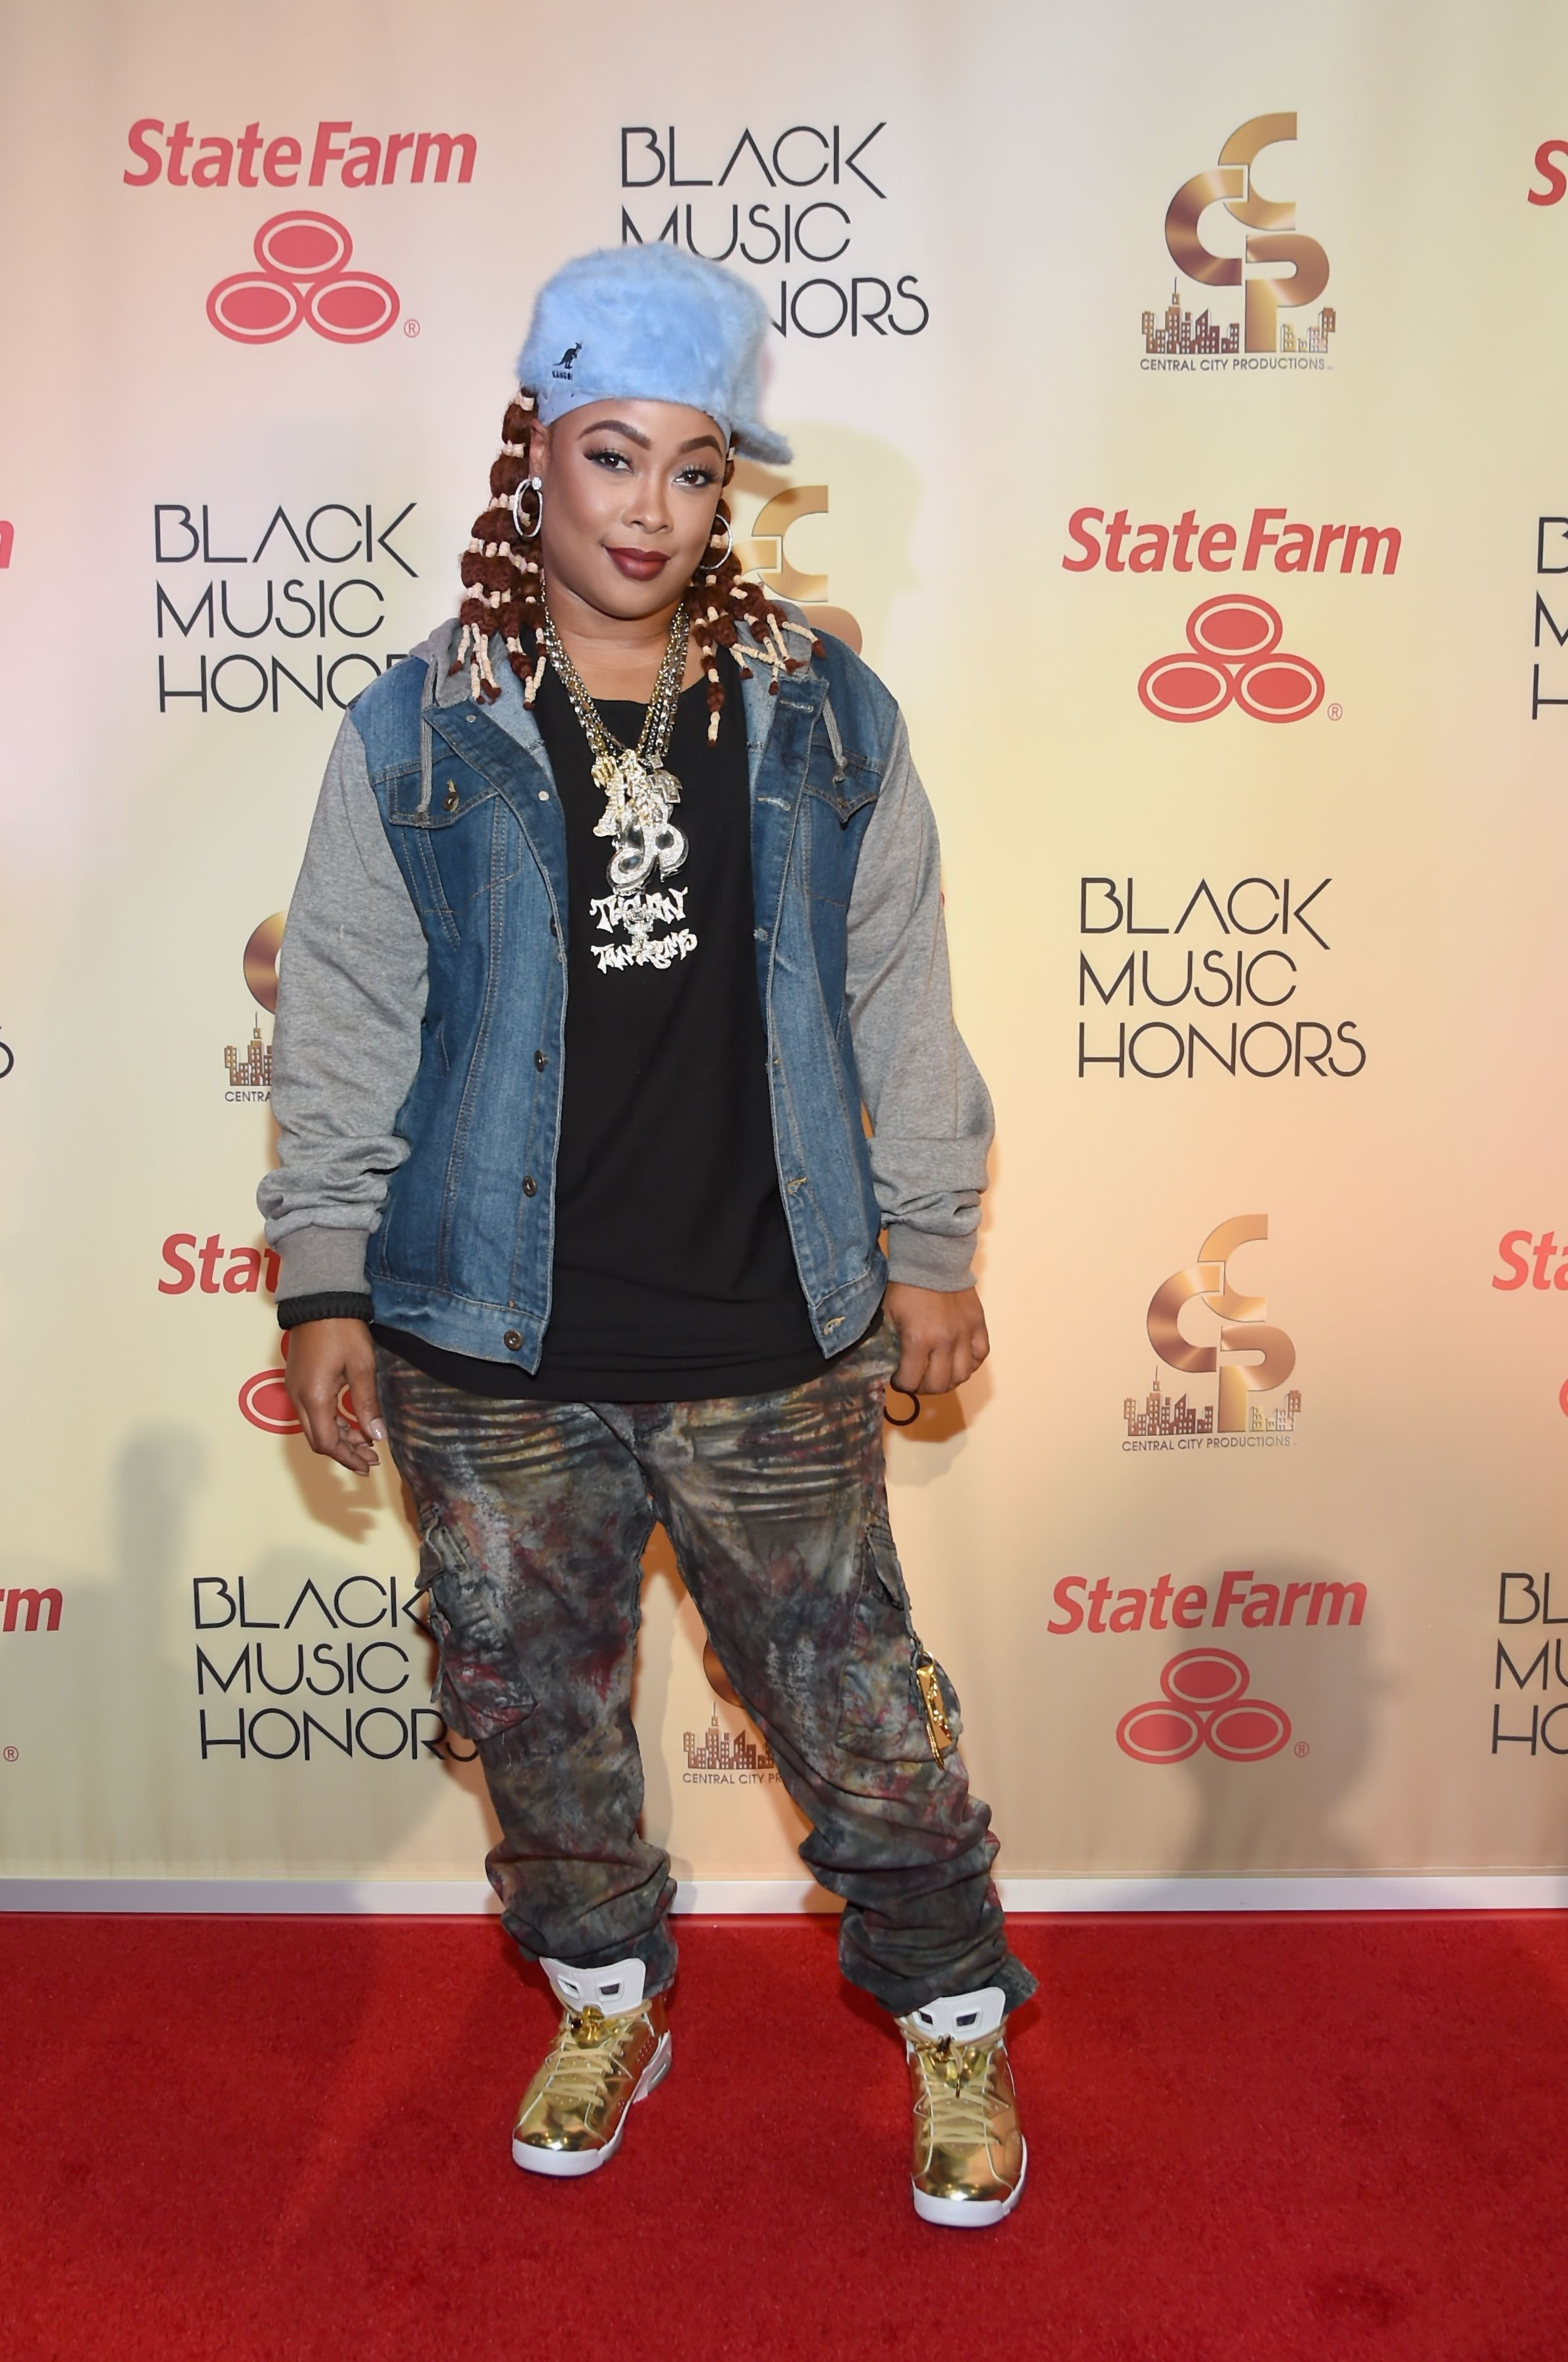 Da Brat arrives at the 2017 Black Music Honors at Tennessee Performing Arts Center on August 18, 2017 in Nashville, Tennessee. | Source: Getty Images